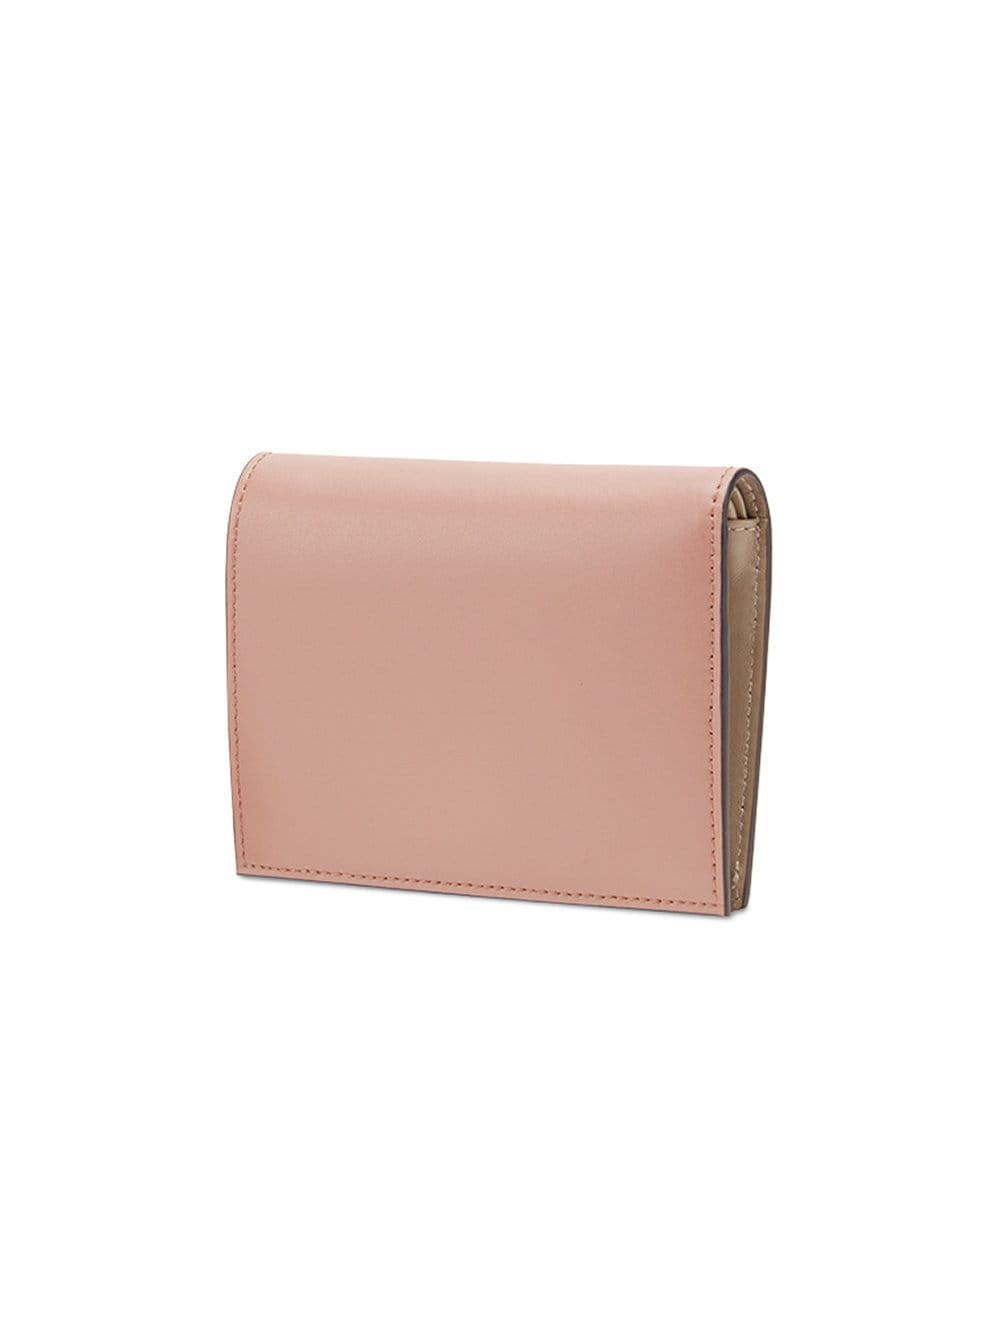 ff822800d743 Fendi By The Way Compact Wallet in Pink - Save 16% - Lyst